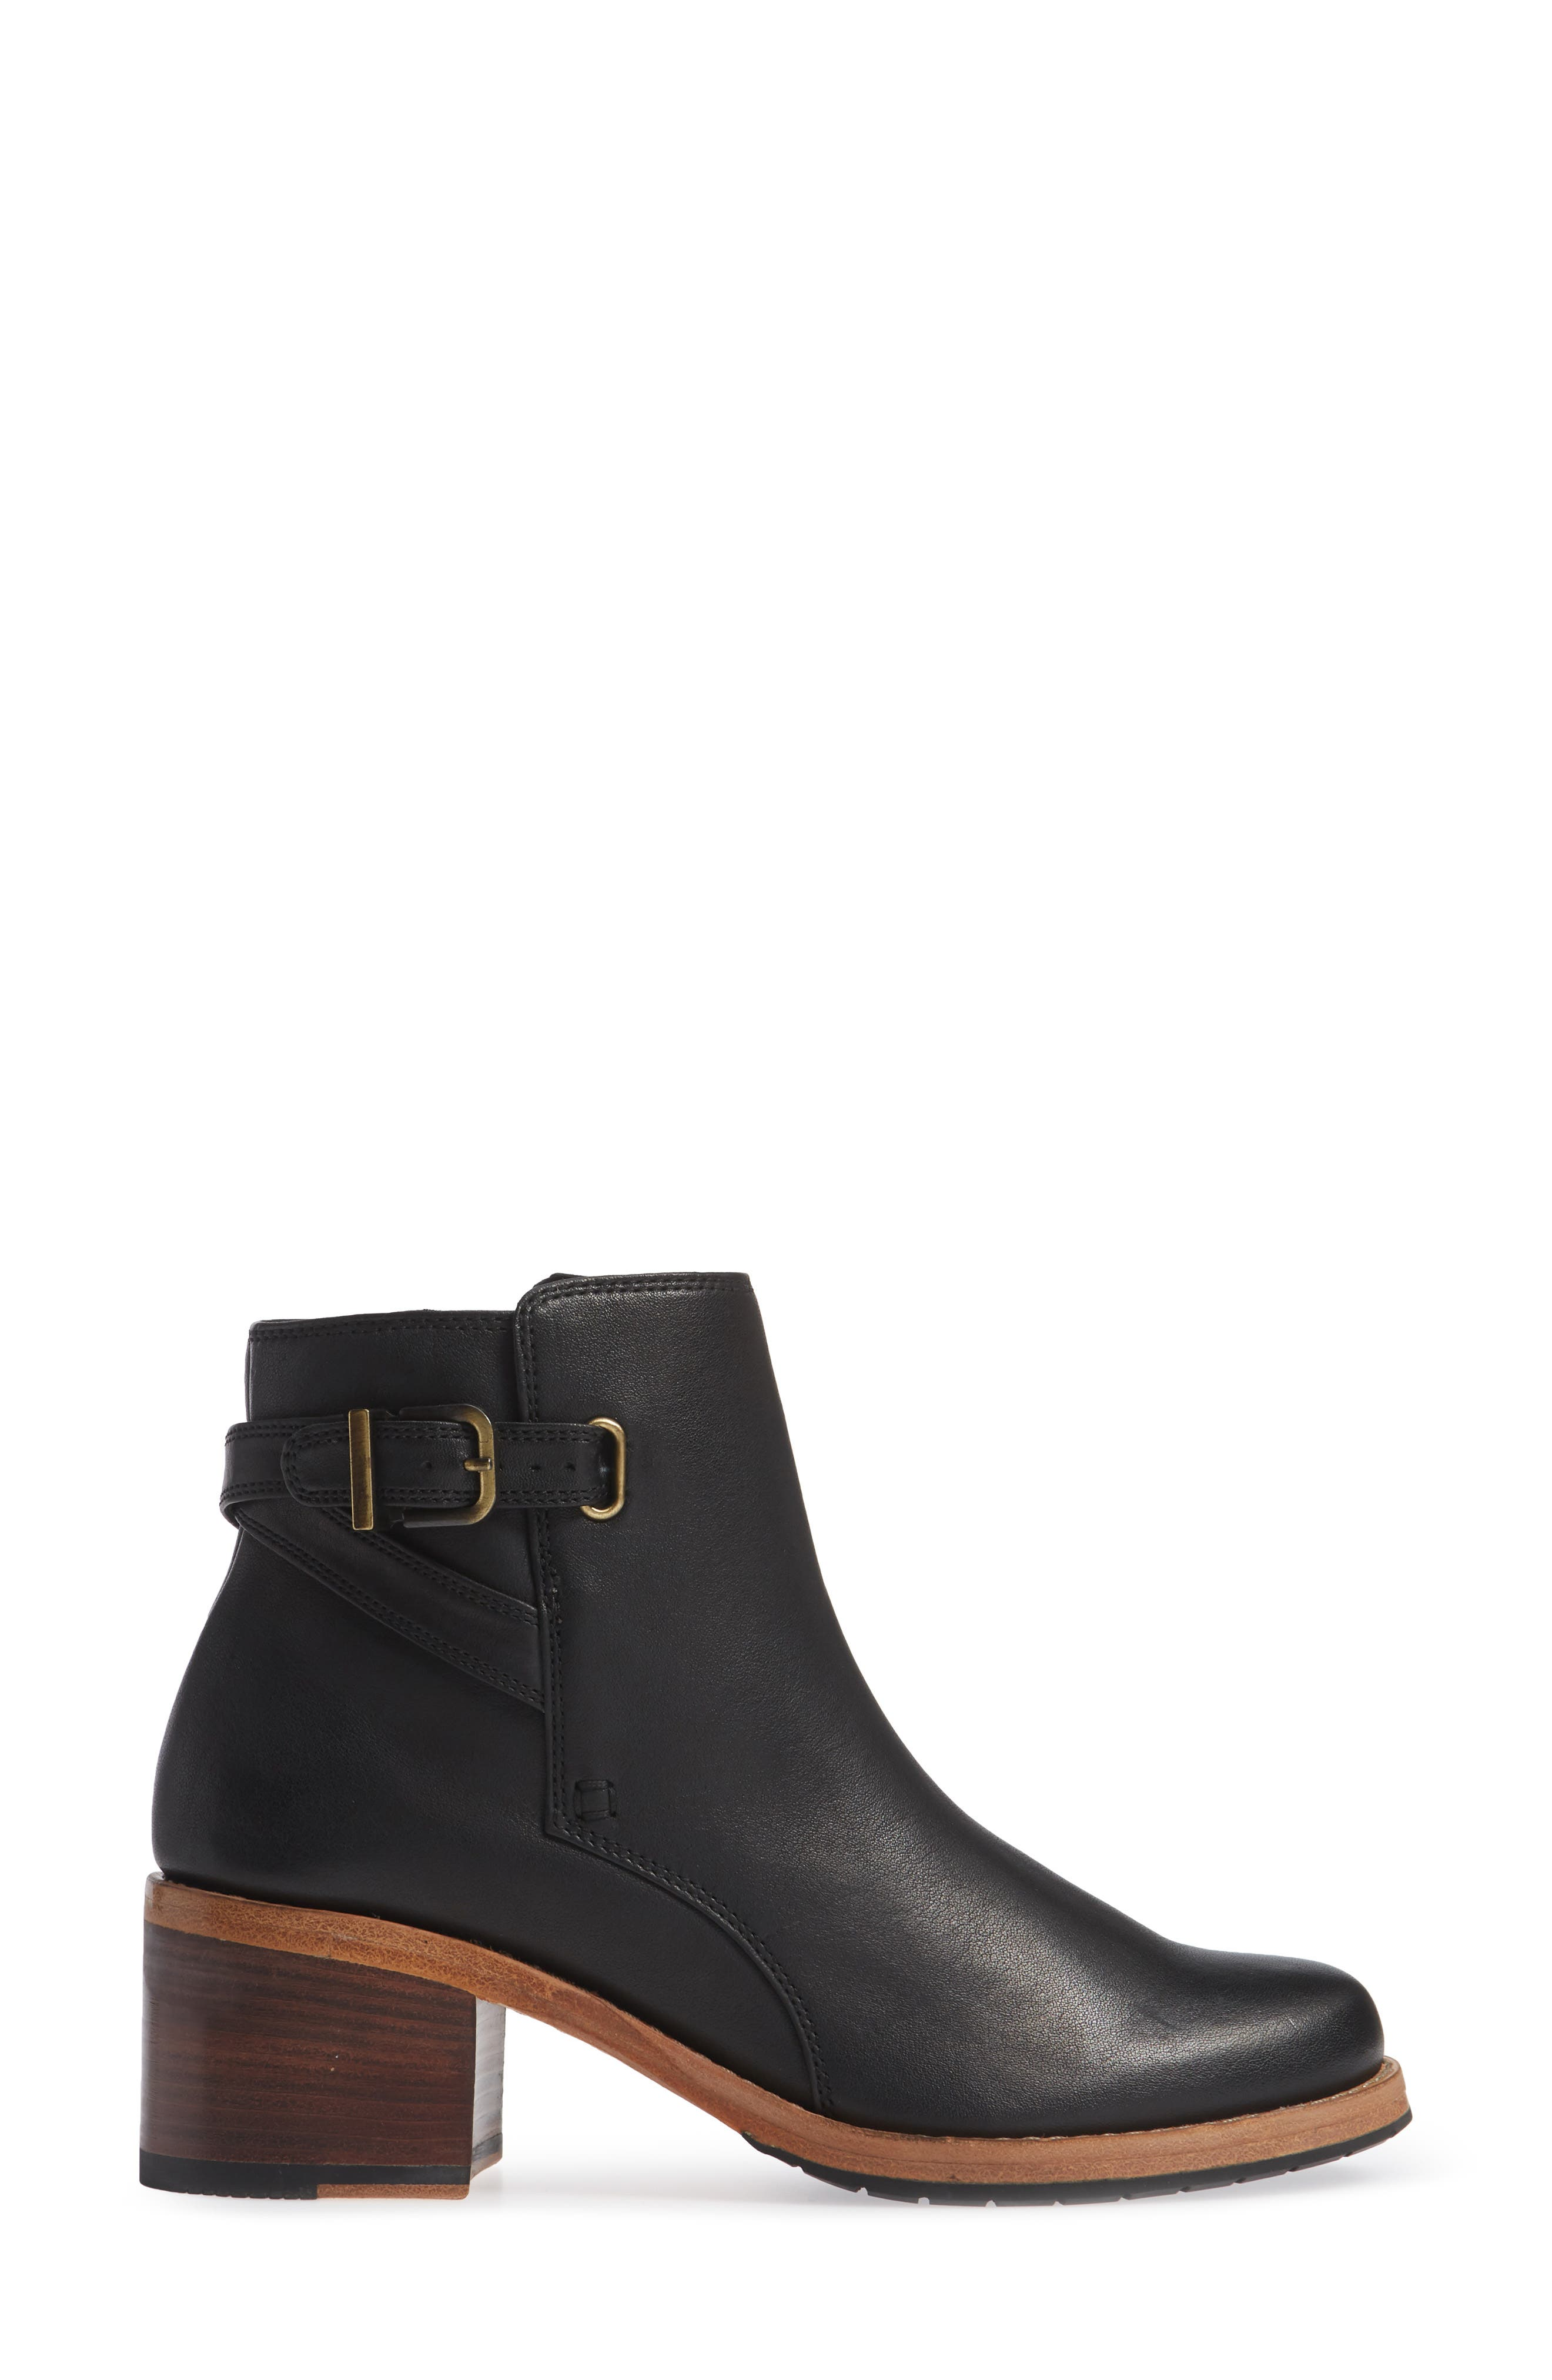 CLARKS<SUP>®</SUP>, Clarkdale Jax Bootie, Alternate thumbnail 3, color, BLACK LEATHER